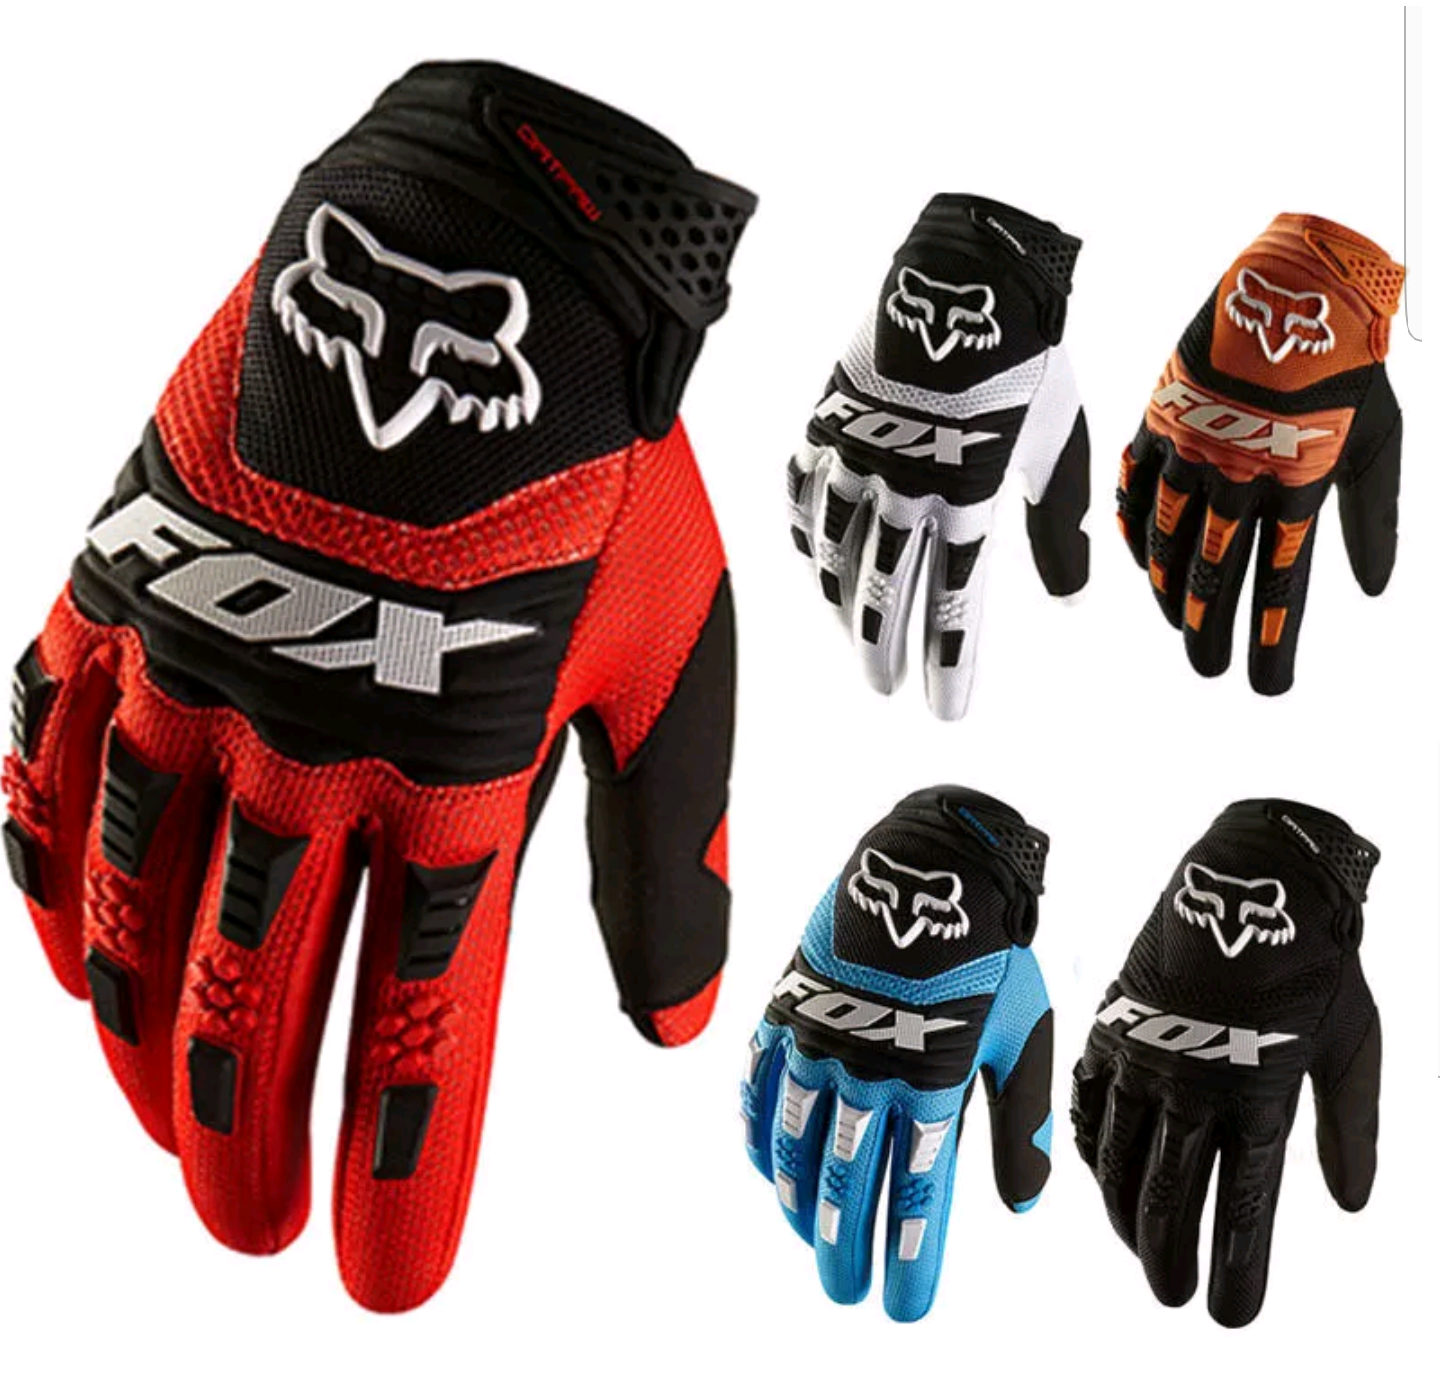 Bicycle Cycling Full Finger Glove Racing Motorcycle Gloves BMX MTB Bike Riding